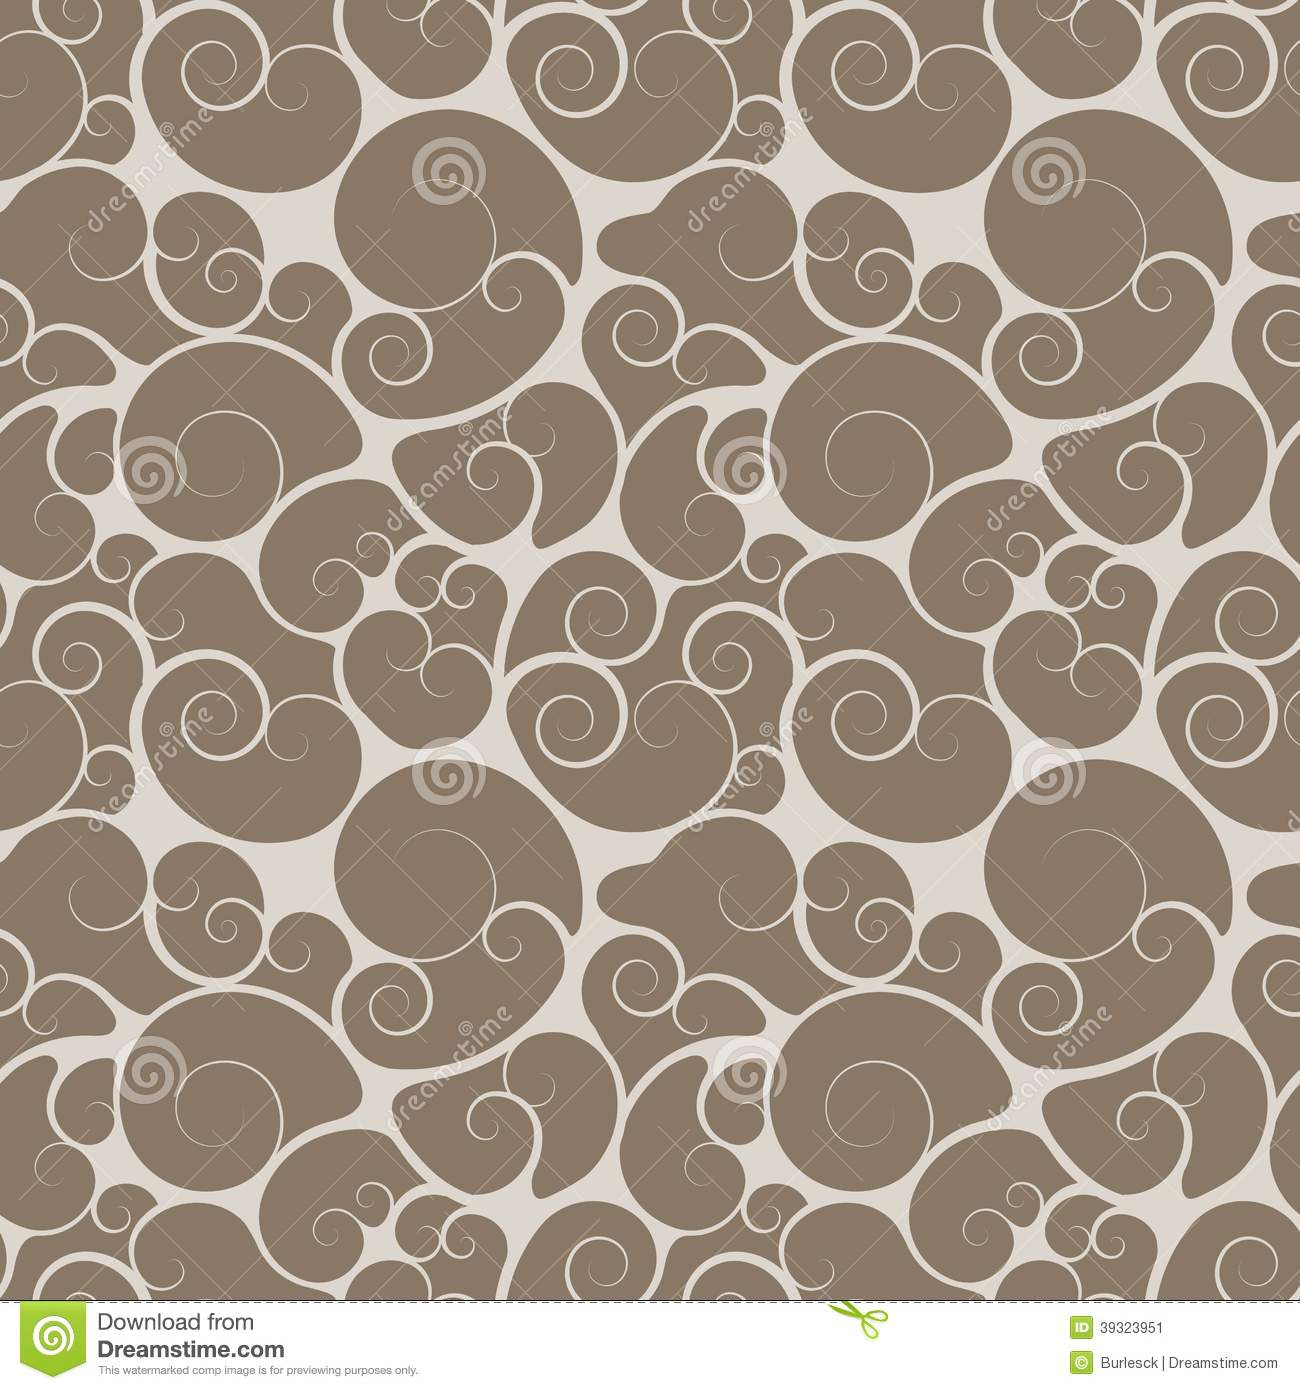 curl scroll or swirl pattern stock vector illustration of